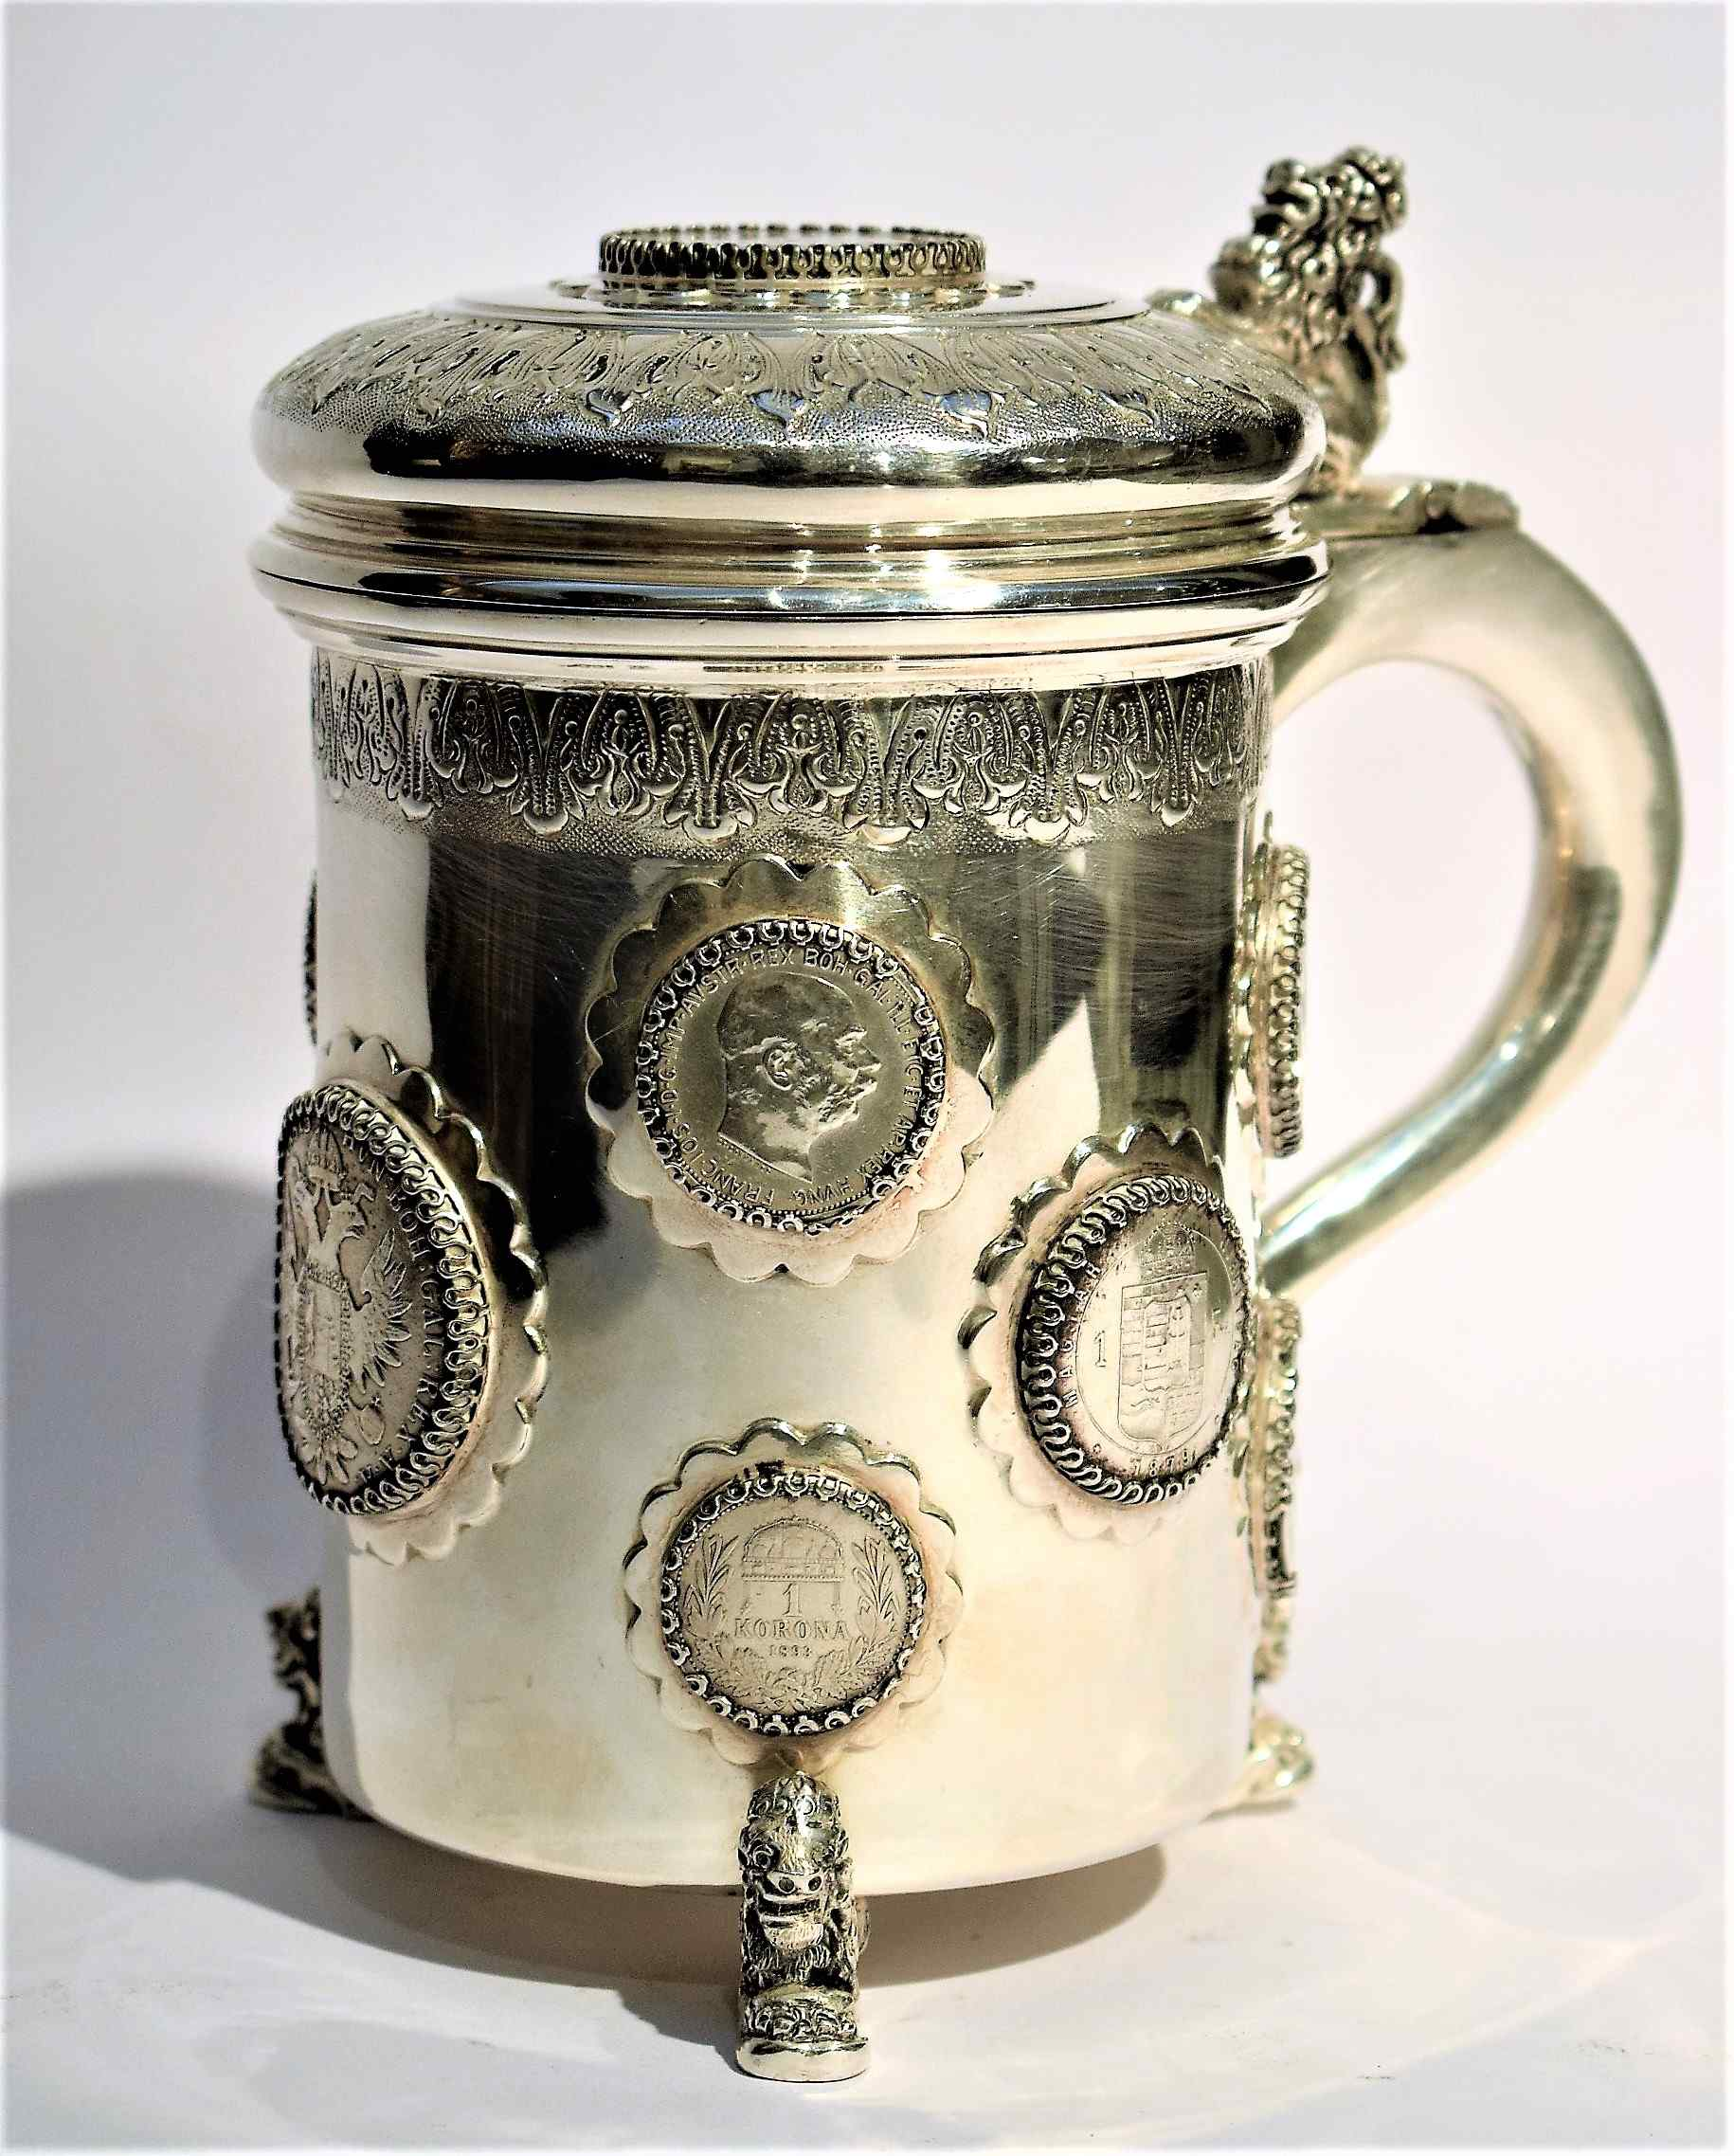 Silver tankard with Austro-Hungarian Empire coins.